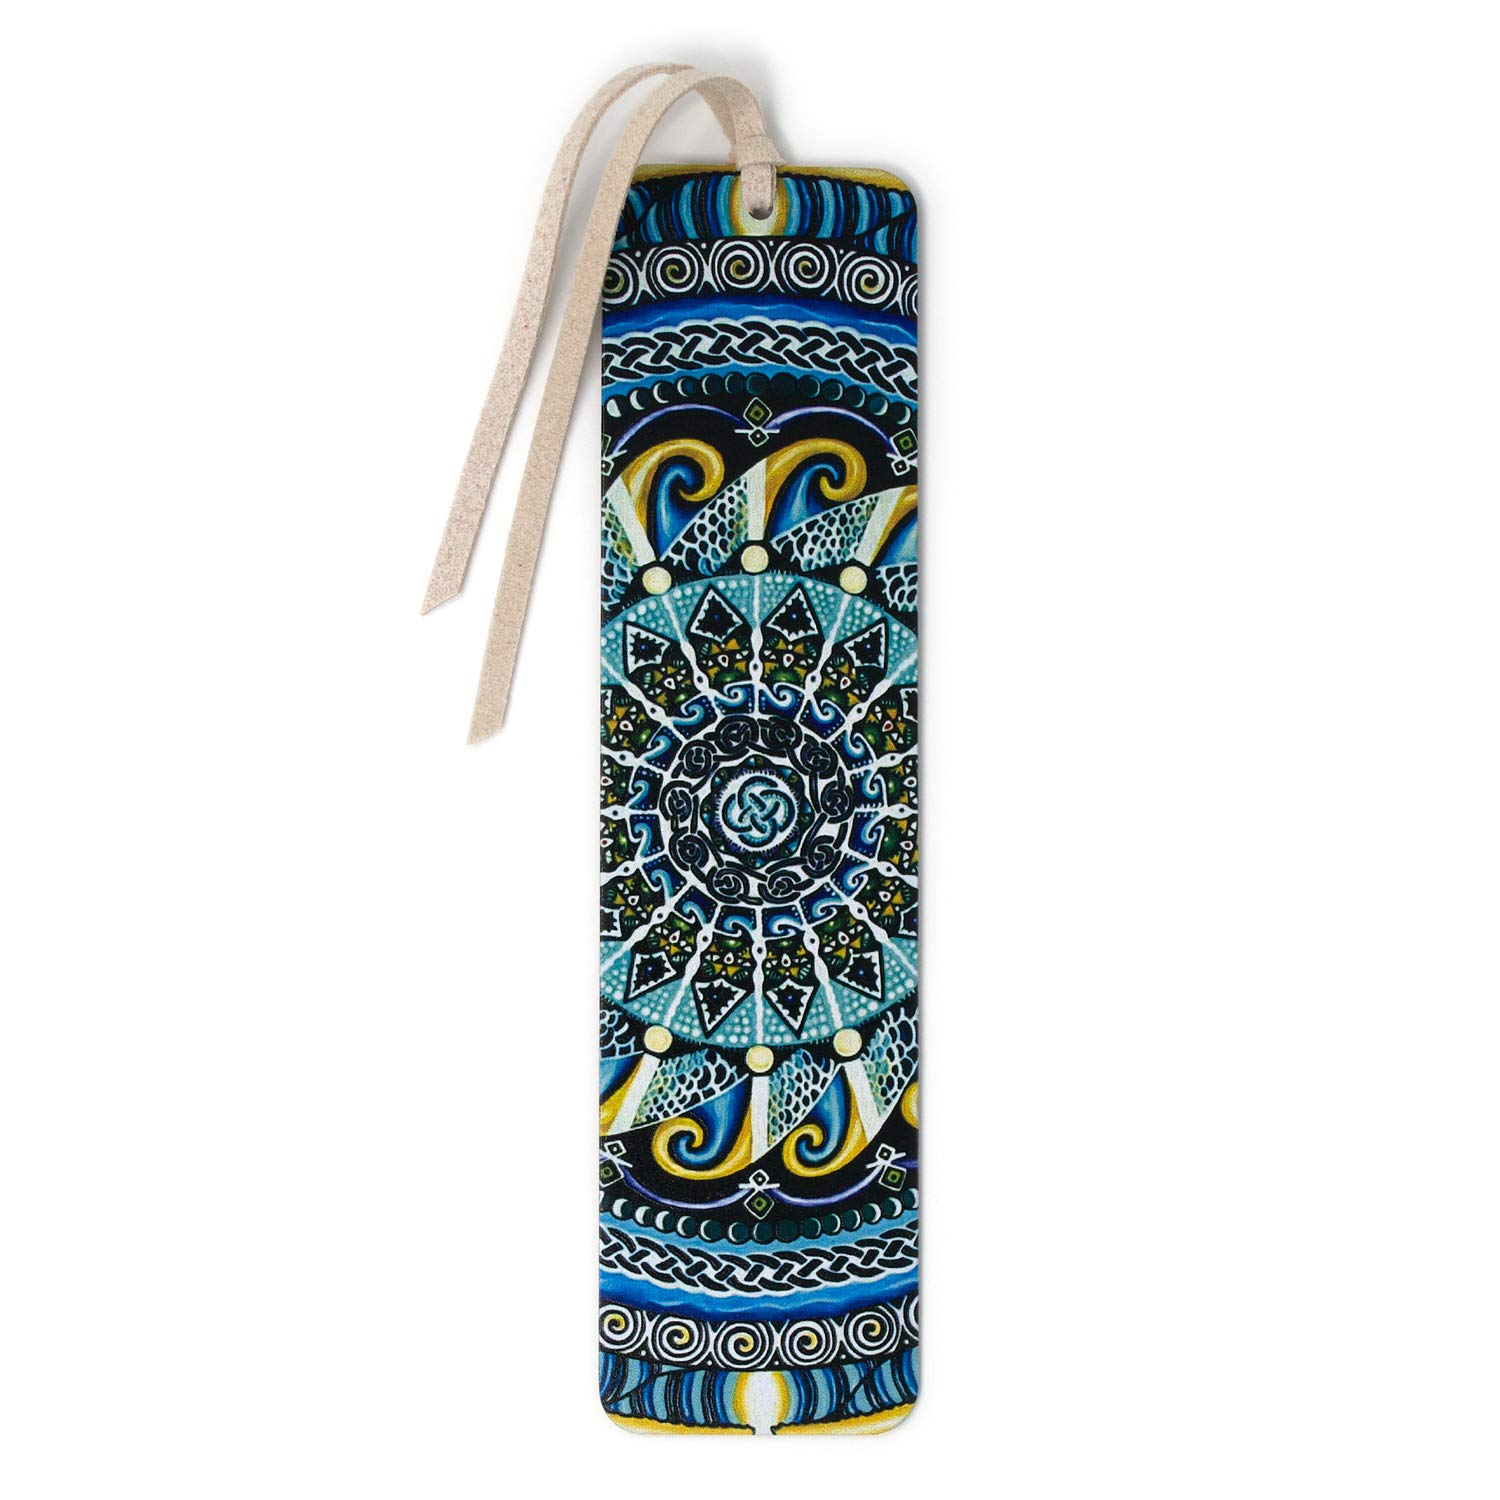 Guardian of Water - Large - Painting by Gaia Woolf-Nightingall - Wooden Bookmark with Suede Tassel